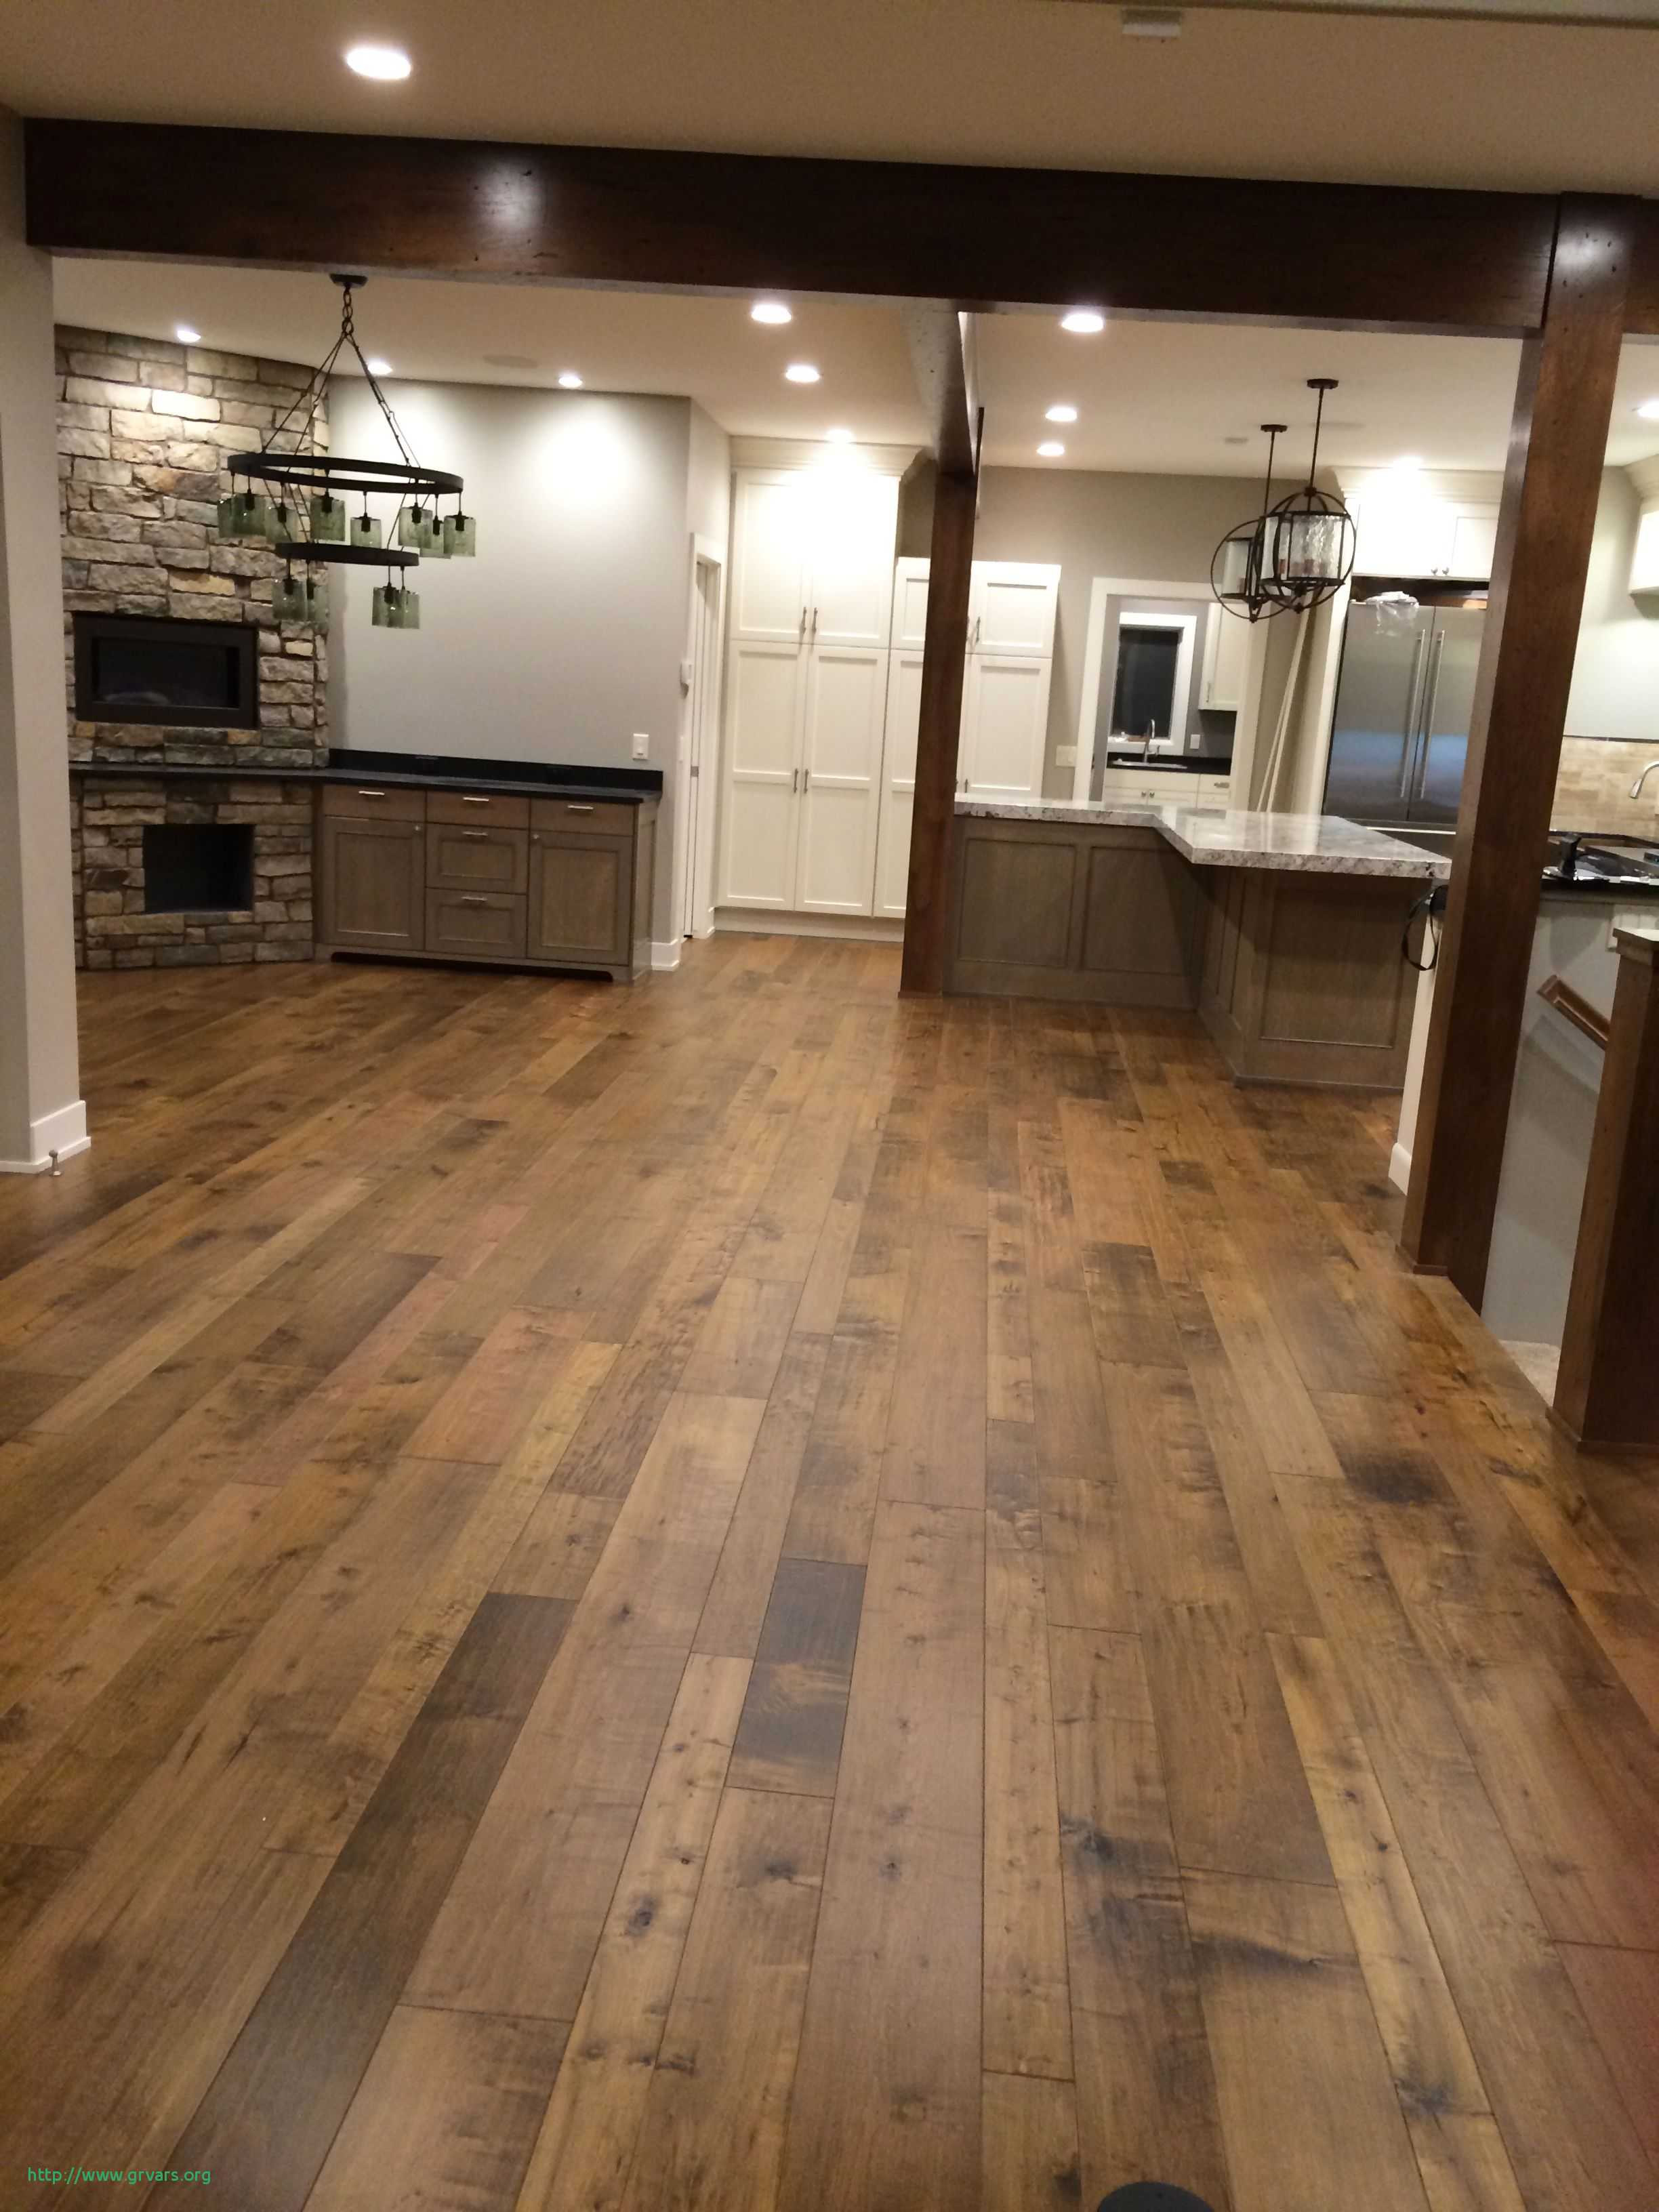 maple hardwood flooring toronto of 15 charmant how to buy engineered hardwood flooring ideas blog with regard to maple hand scraped engineered how to buy engineered hardwood flooring impressionnant monterey hardwood collection rooms and spaces